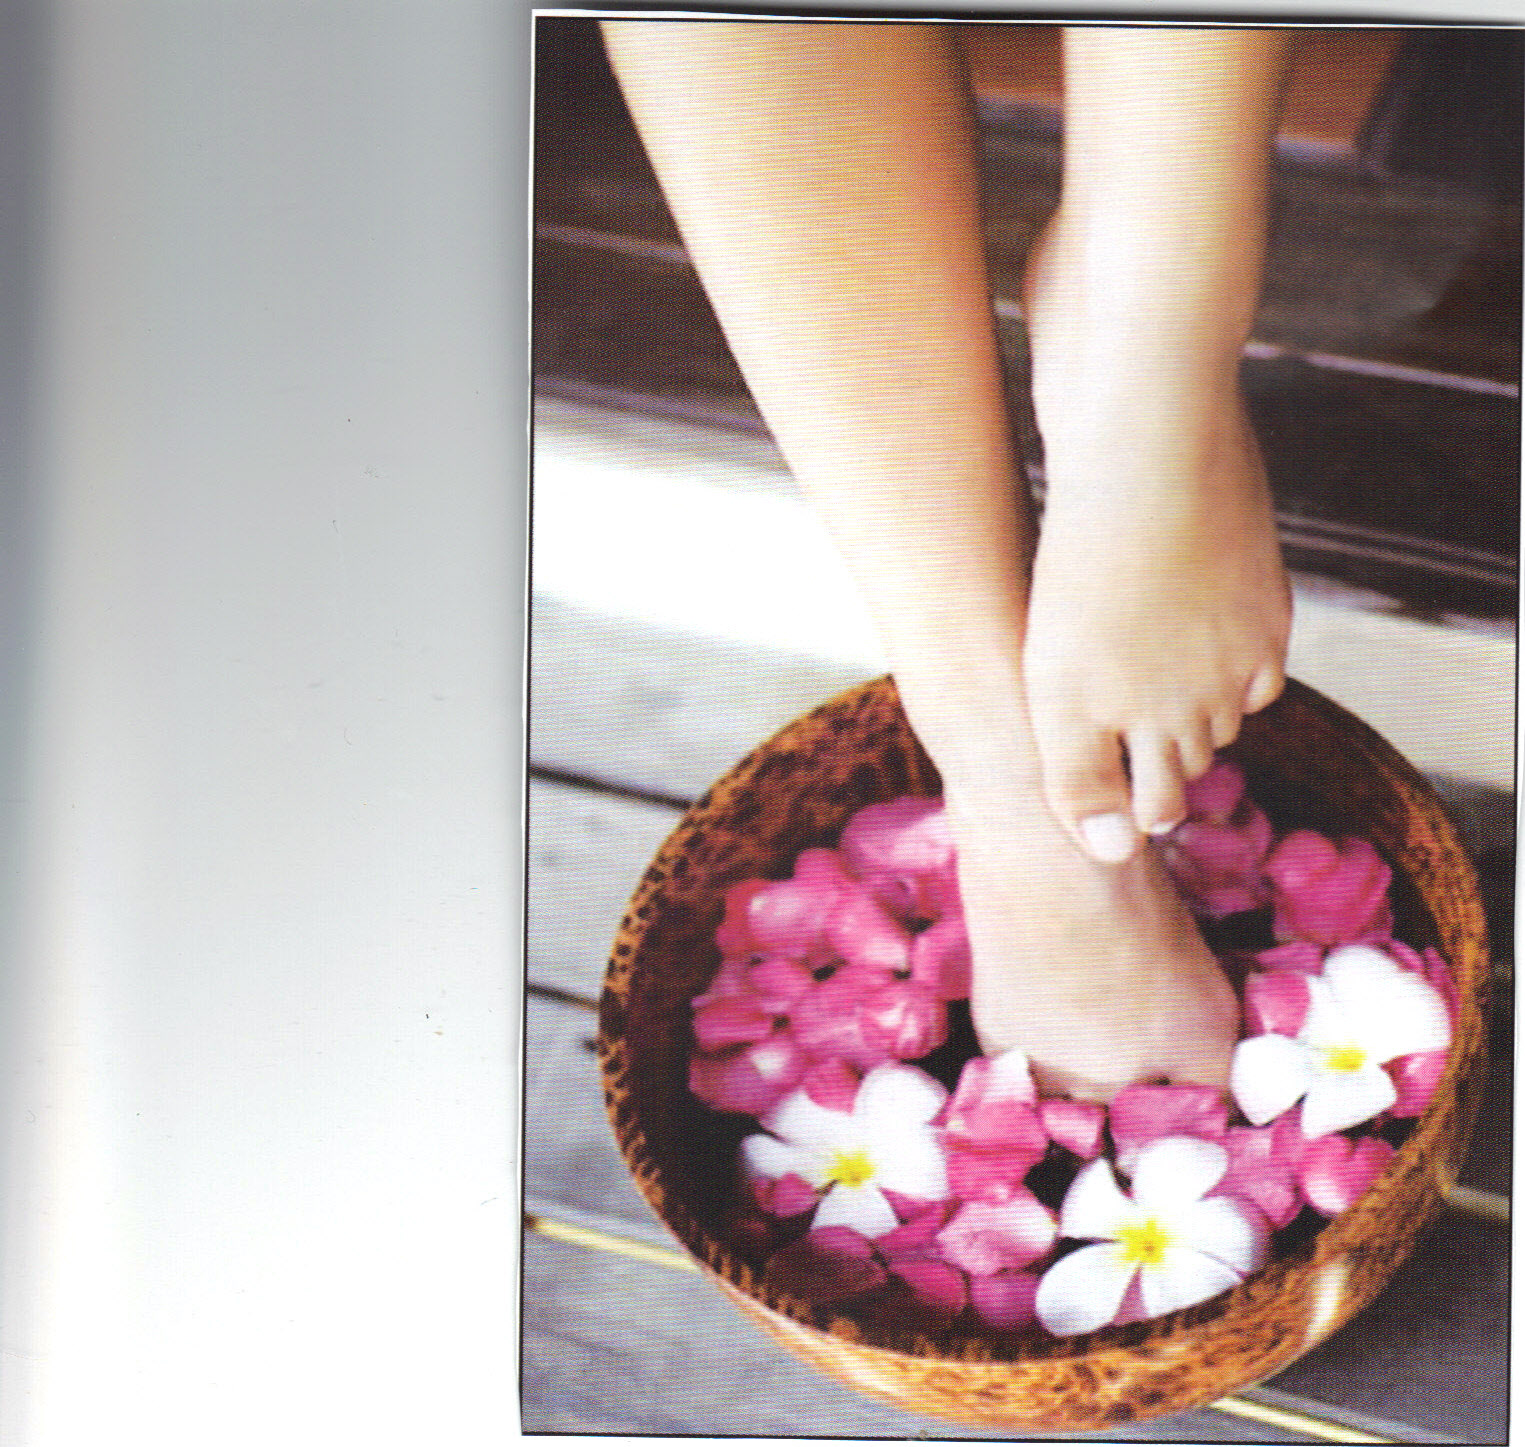 Vitality 4 Life Detoxifing Foot Spa NOW OPEN IN MANITOUWADGE ! - Vitality 4 Life Photo 1